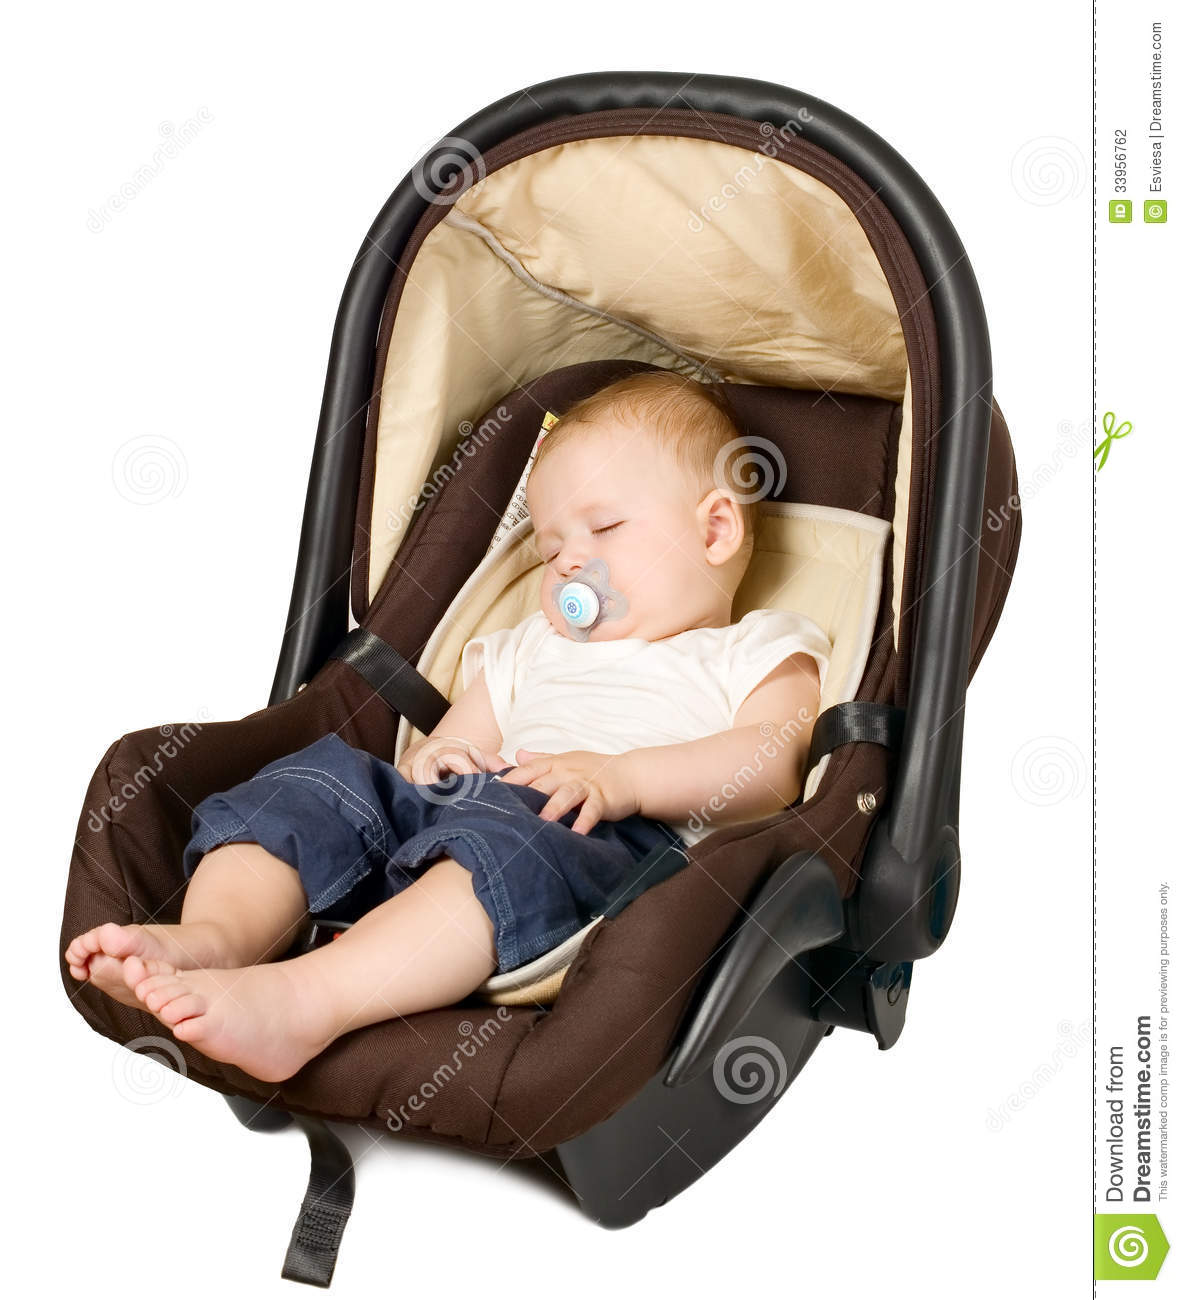 Boy In Car Seat, Safety Concept Stock Photo - Image of drive, hand